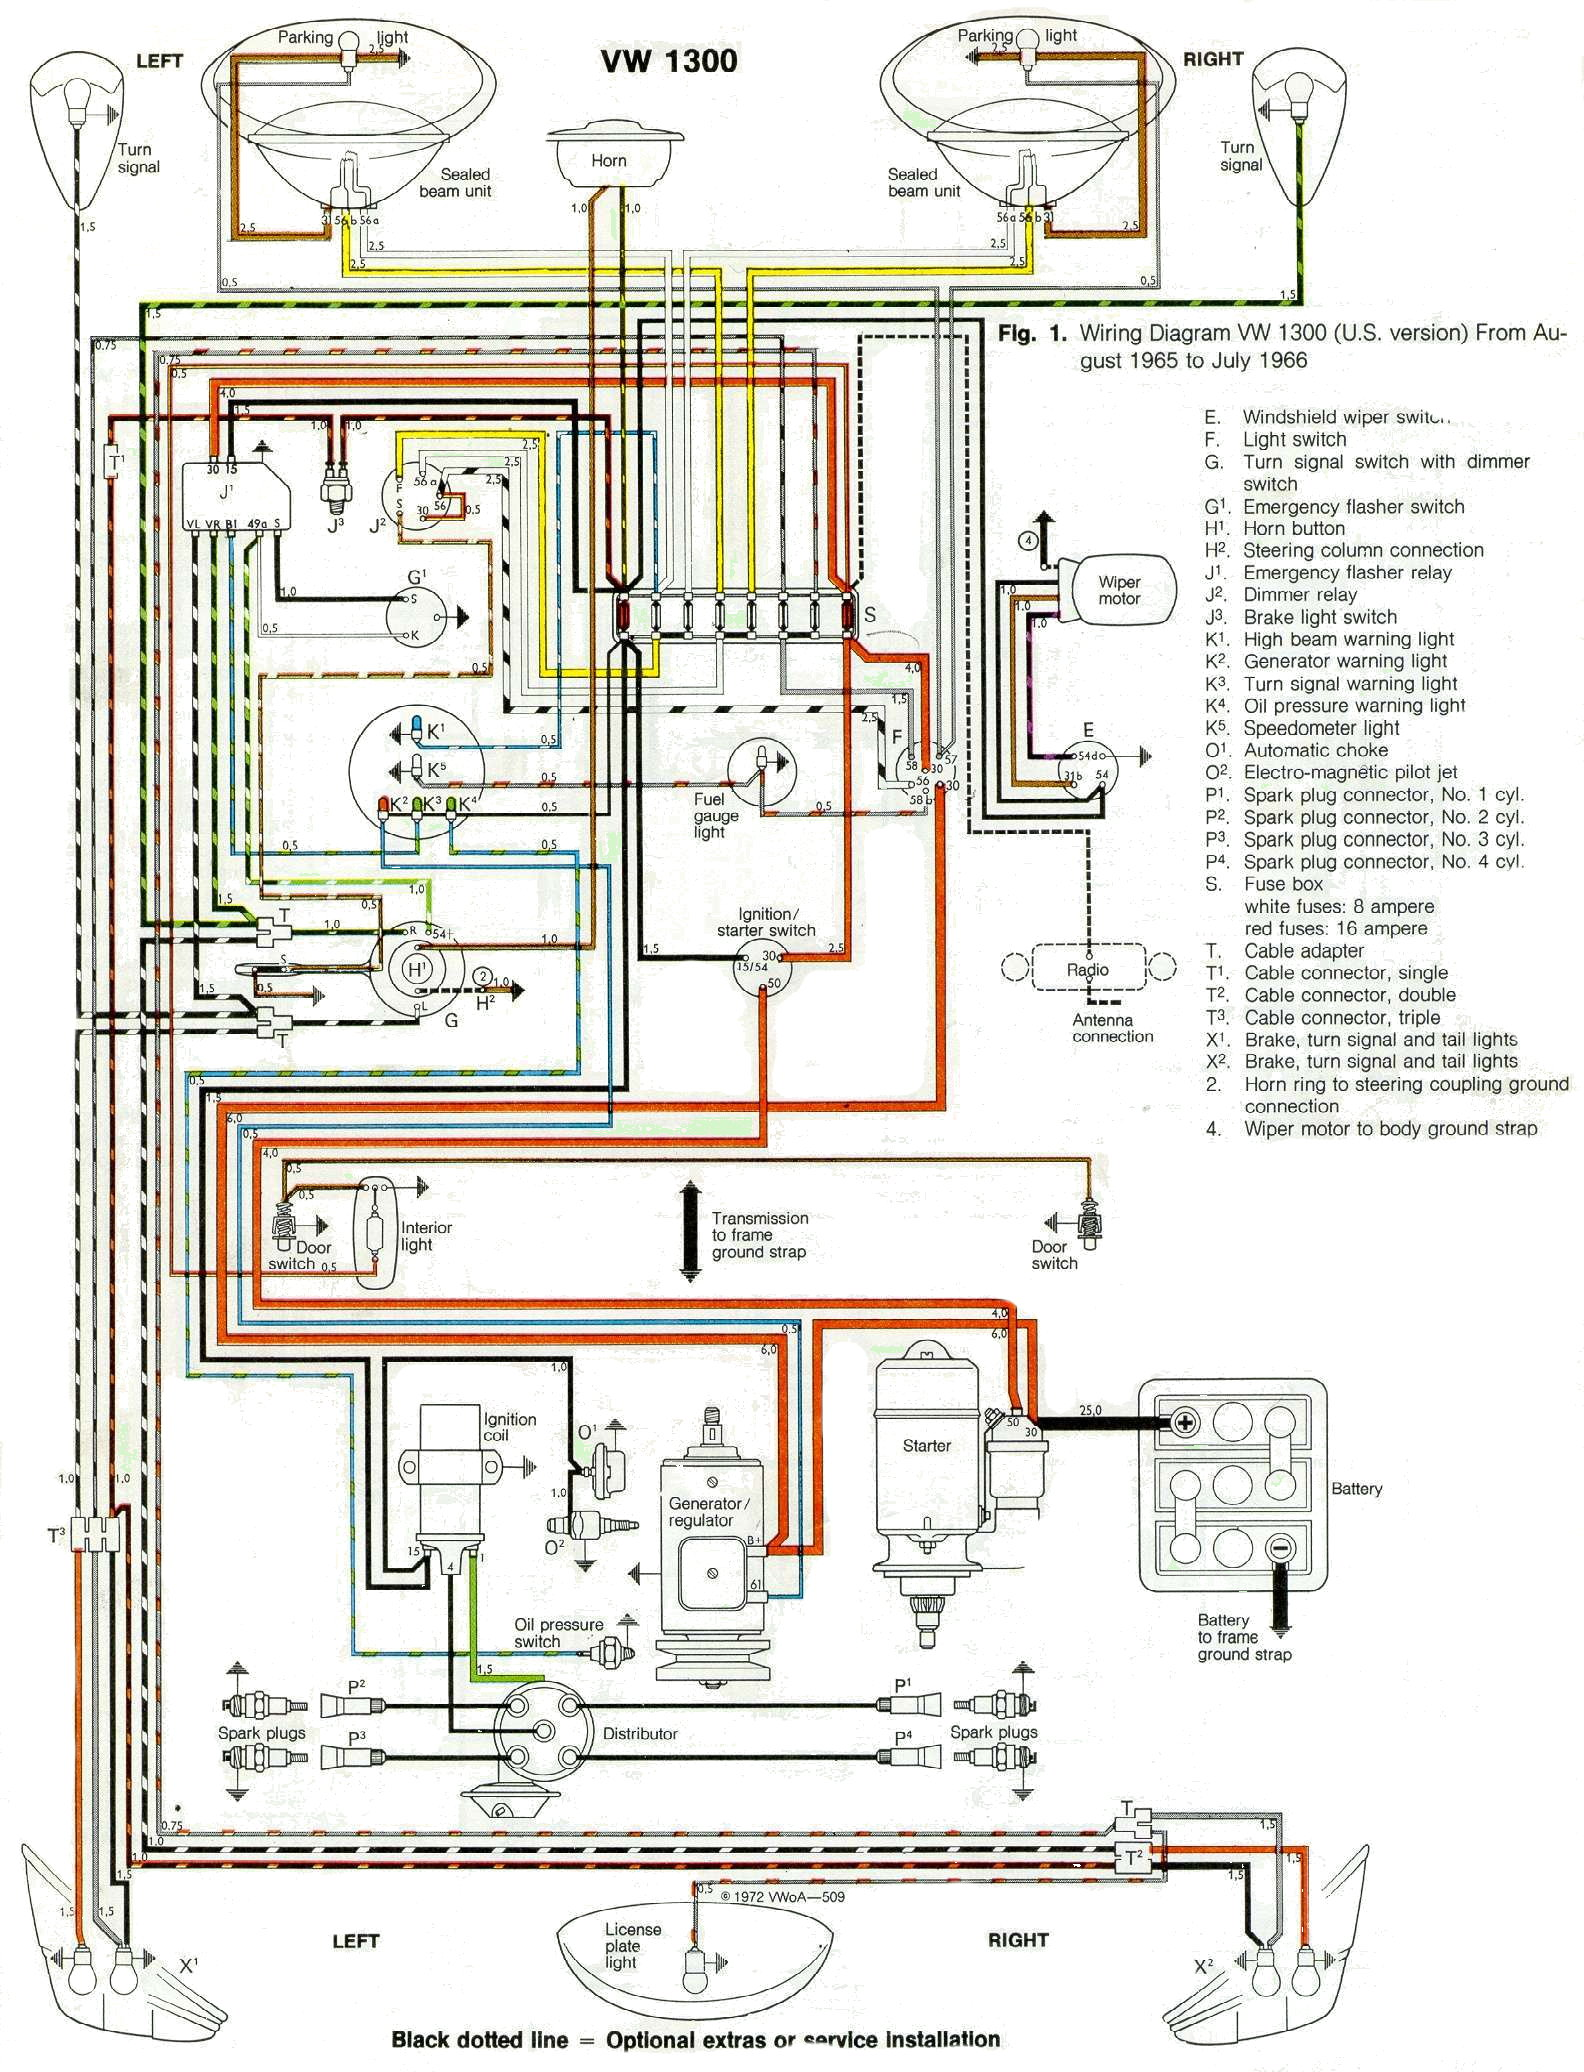 1966 wiring diagram rh 1966vwbeetle com vw beetle wiring diagram vw beetle wiring diagram 1974